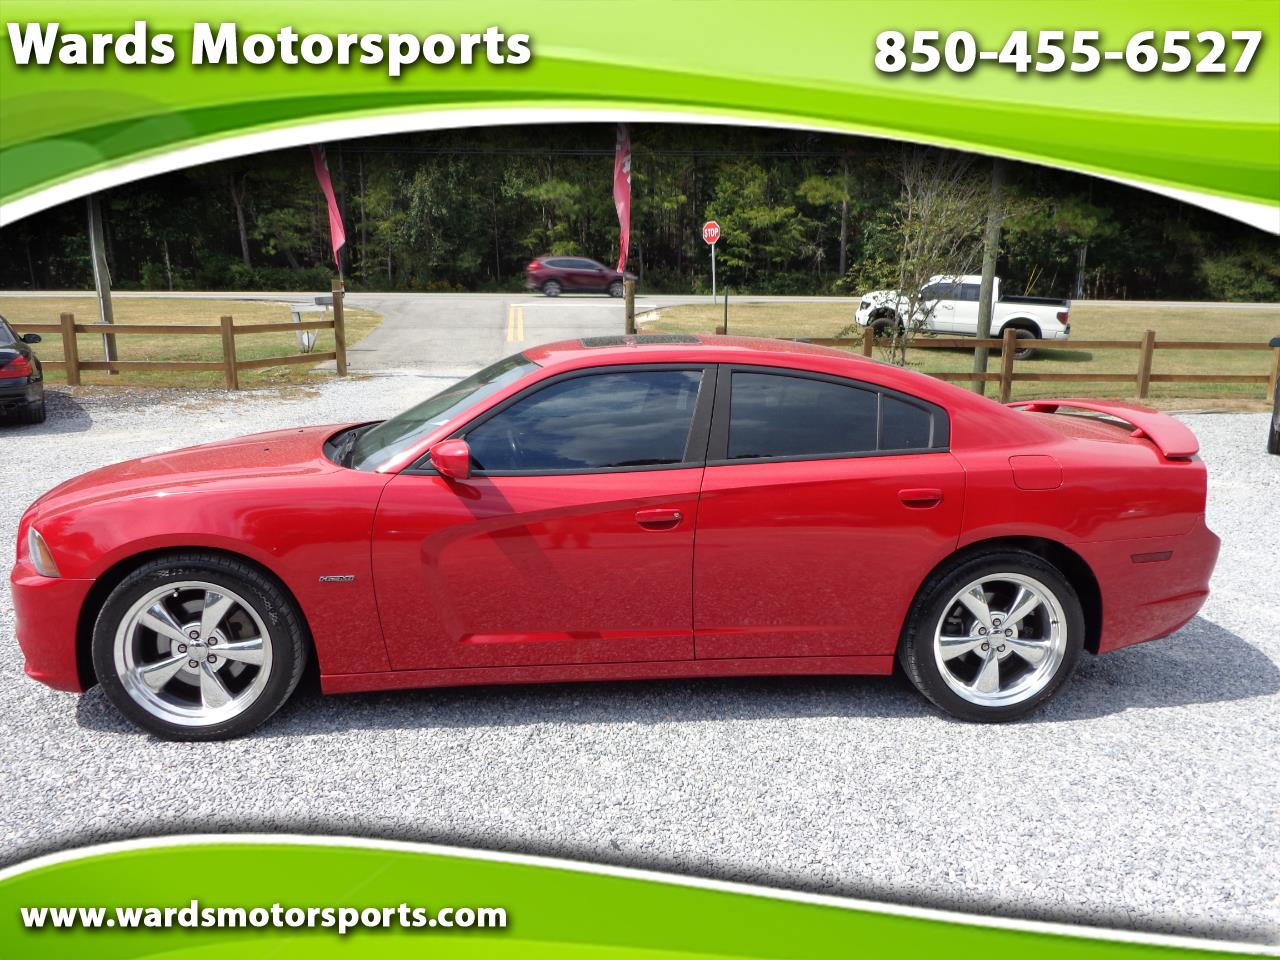 Dodge Charger 4dr Sdn Road/Track RWD 2012